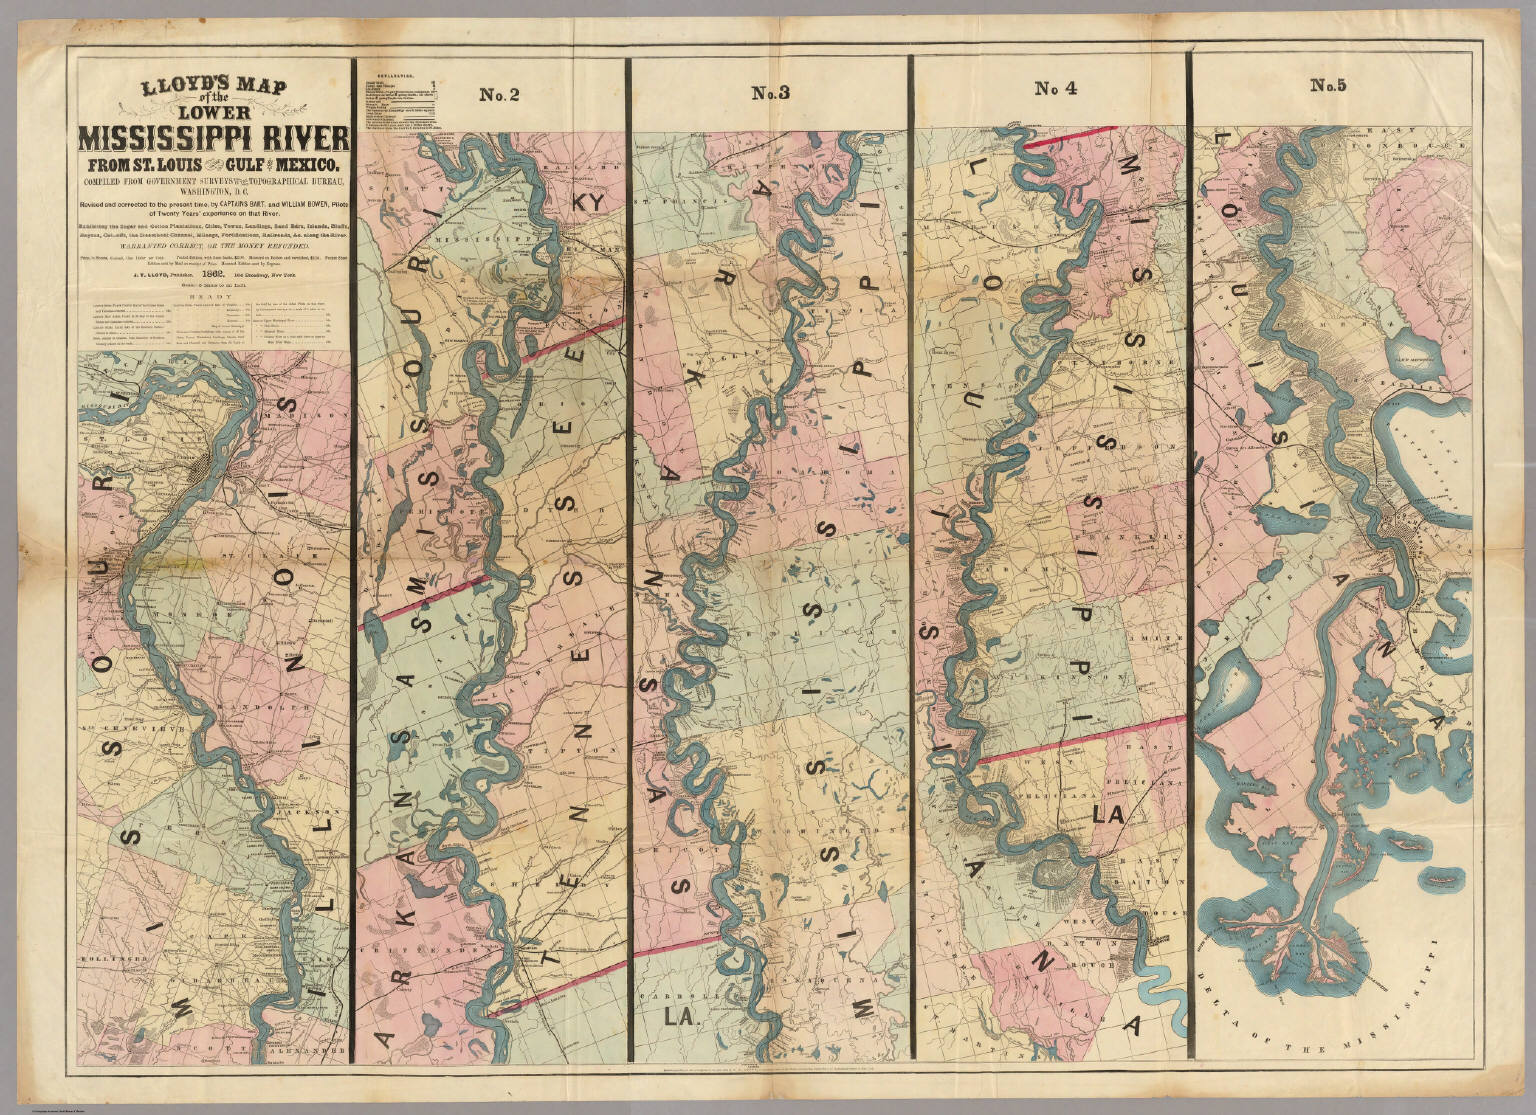 lloyds map of the lower mississippi river from st louis to the gulf of mexico